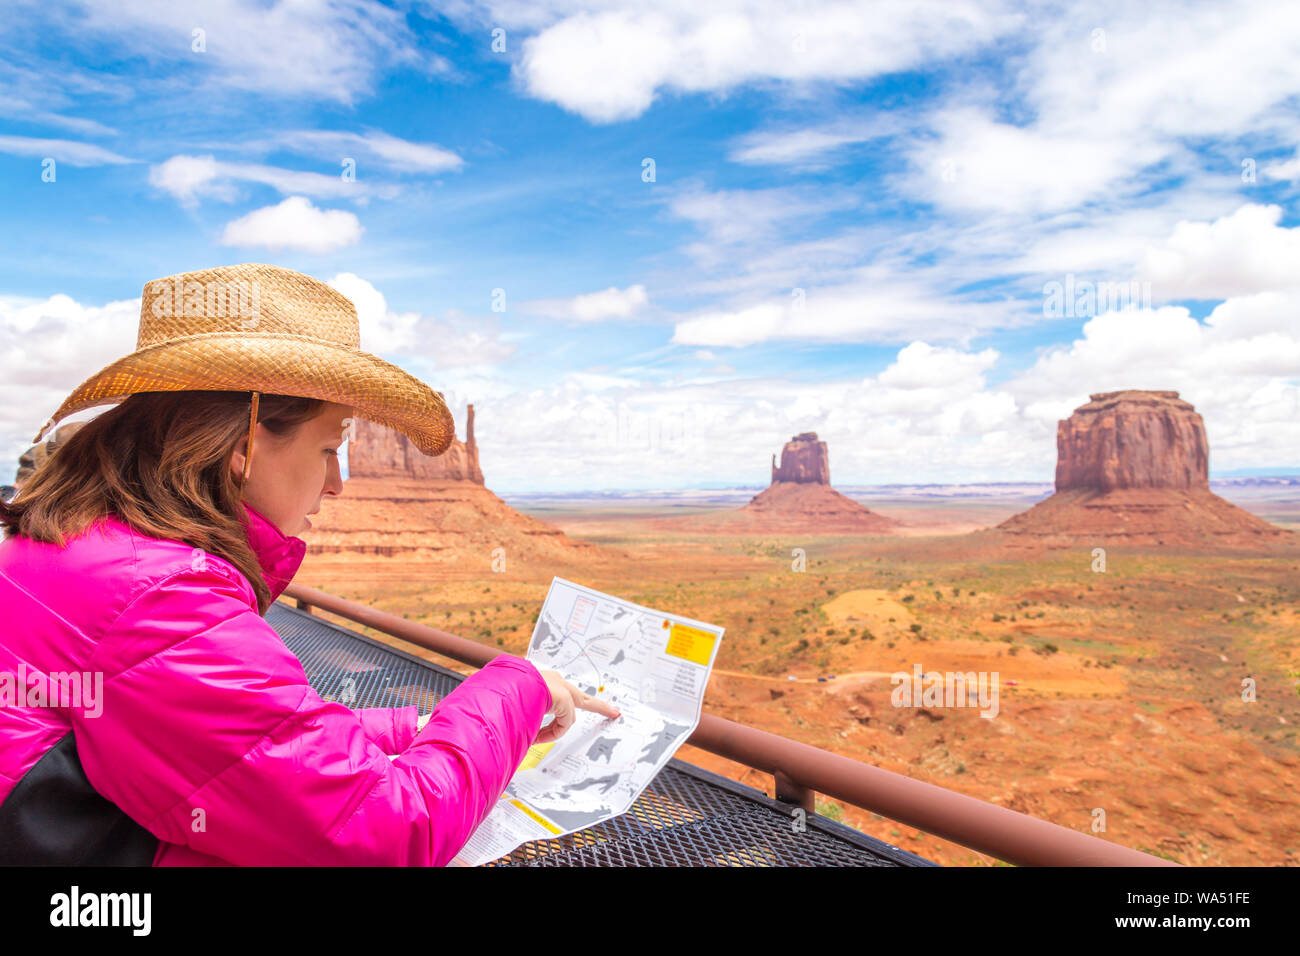 Map Of Arizona Monument Valley.Woman Wearing Cowboy Hat Sitting And Looking At Map In Monument